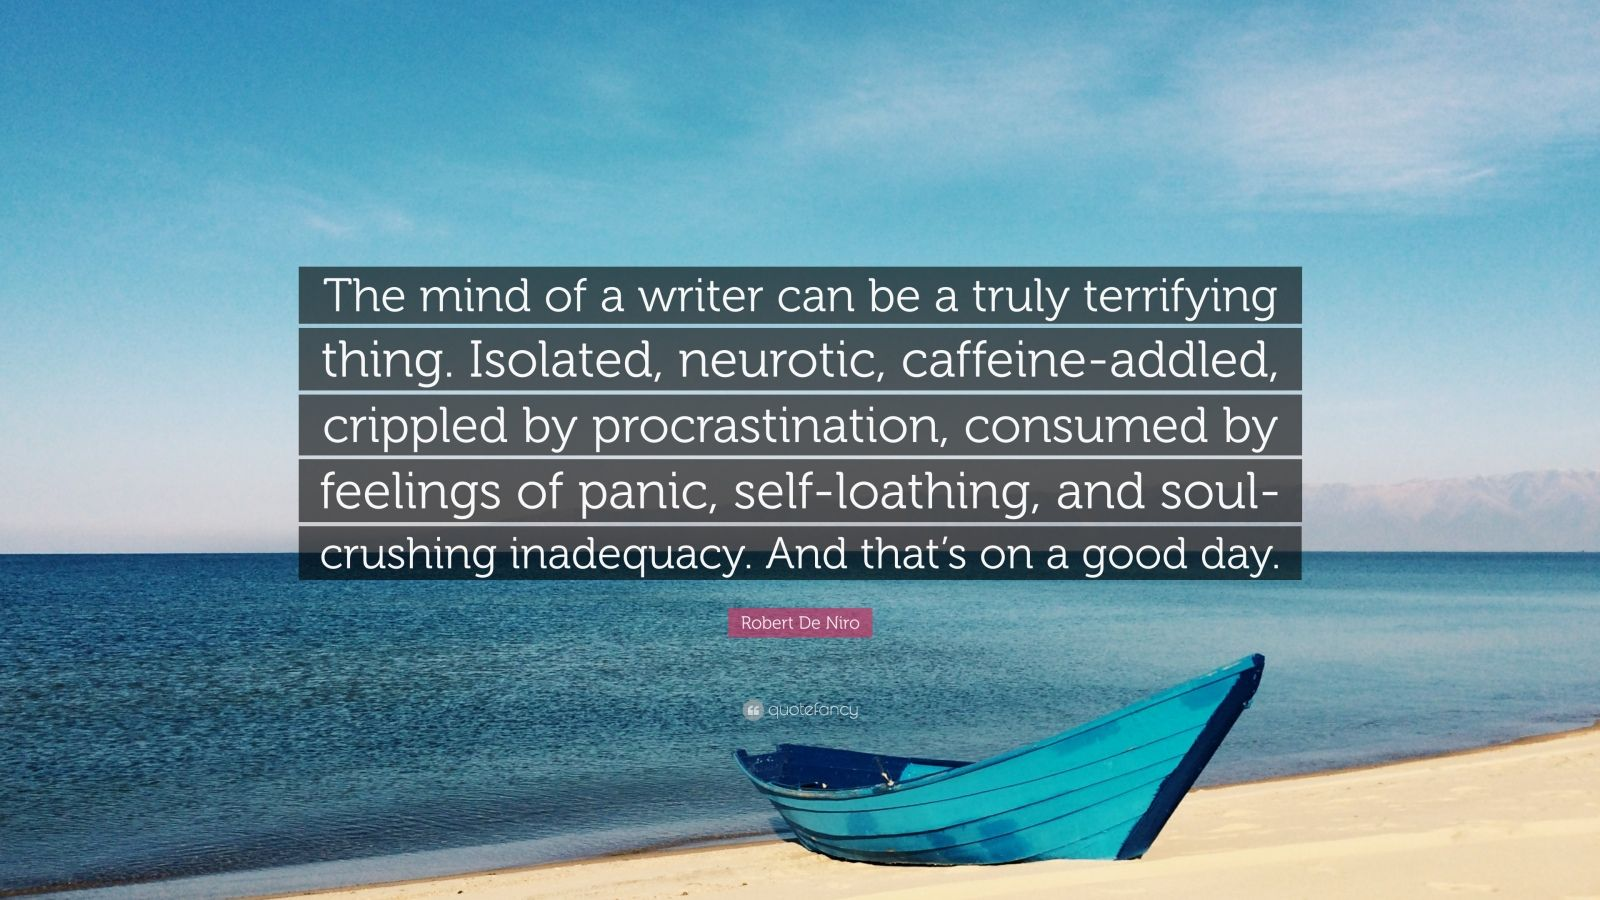 "Robert De Niro Quote: ""The mind of a writer can be a truly terrifying thing. Isolated, neurotic, caffeine-addled, crippled by procrastination, consumed by feelings of panic, self-loathing, and soul-crushing inadequacy. And that's on a good day."""